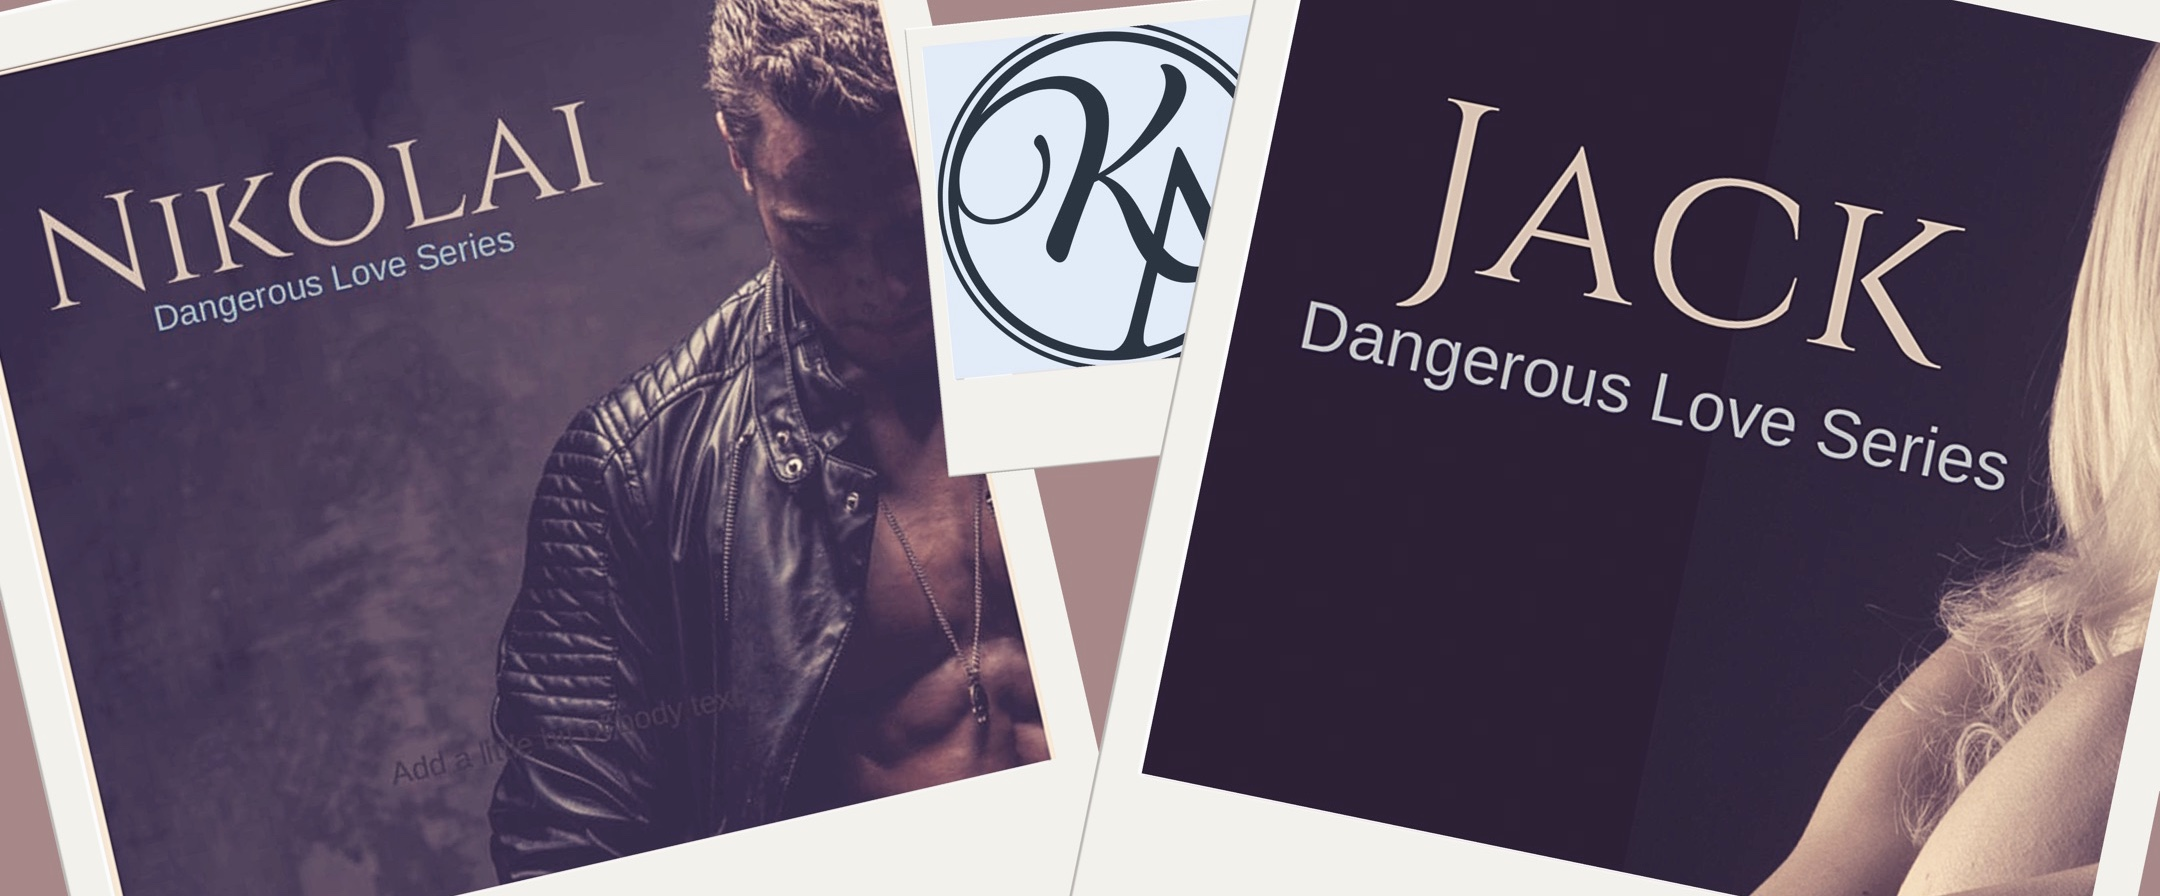 Kristin Alexander - While Kristin is working on Drago, be sure to get caught up with Nikolai and Jack in her Dangerous Love Series.